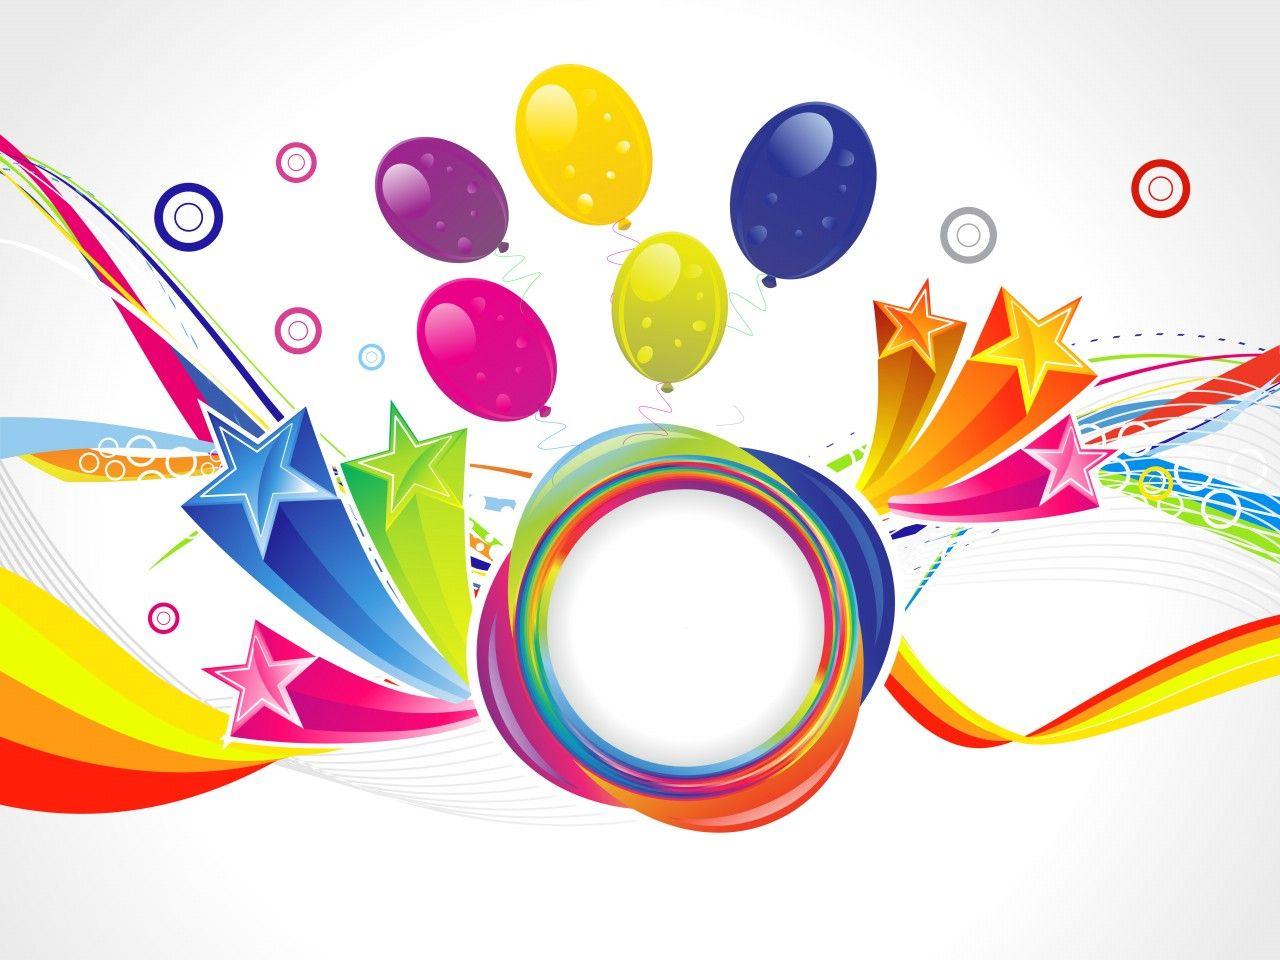 Abstract Happy Birthday Backgrounds Fondos para fotos